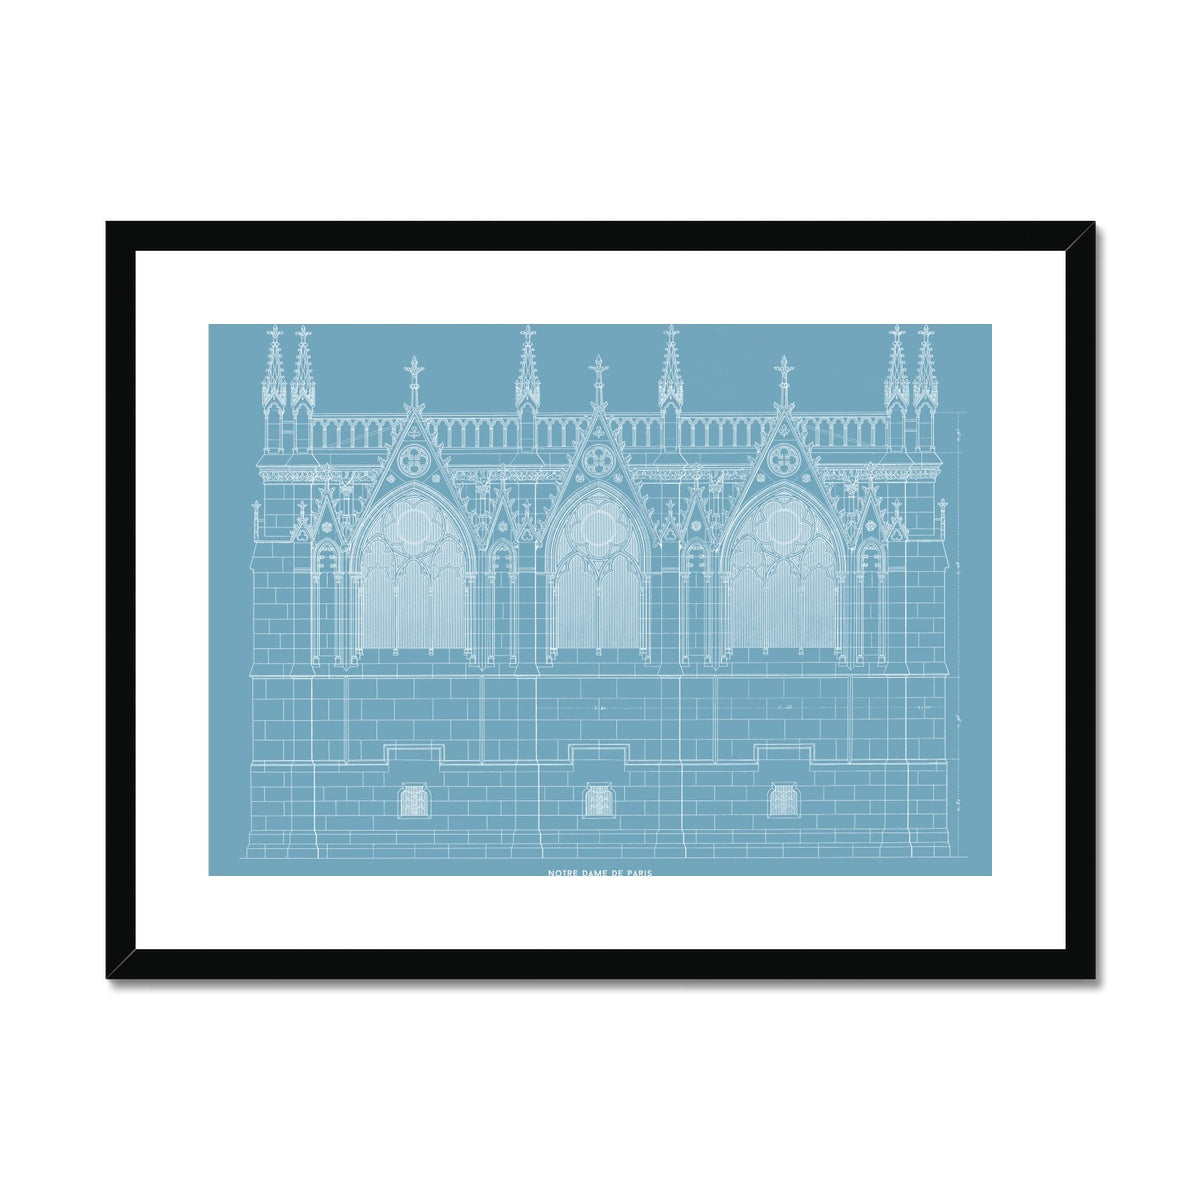 Notre Dame de Paris - Side Elevation - Blue -  Framed & Mounted Print